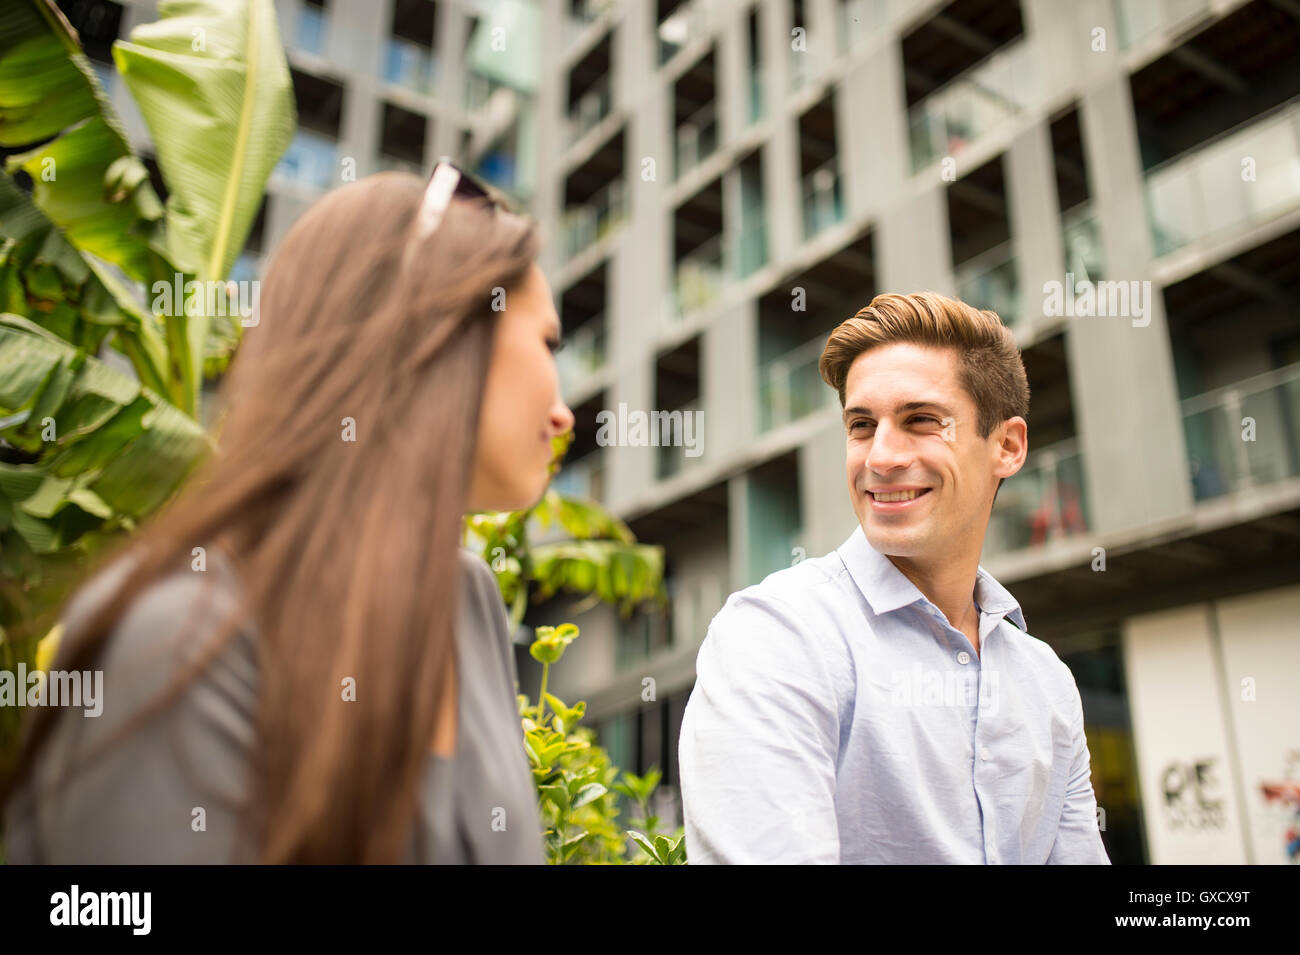 Young businesswoman and man chatting outside office, London, UK Stock Photo